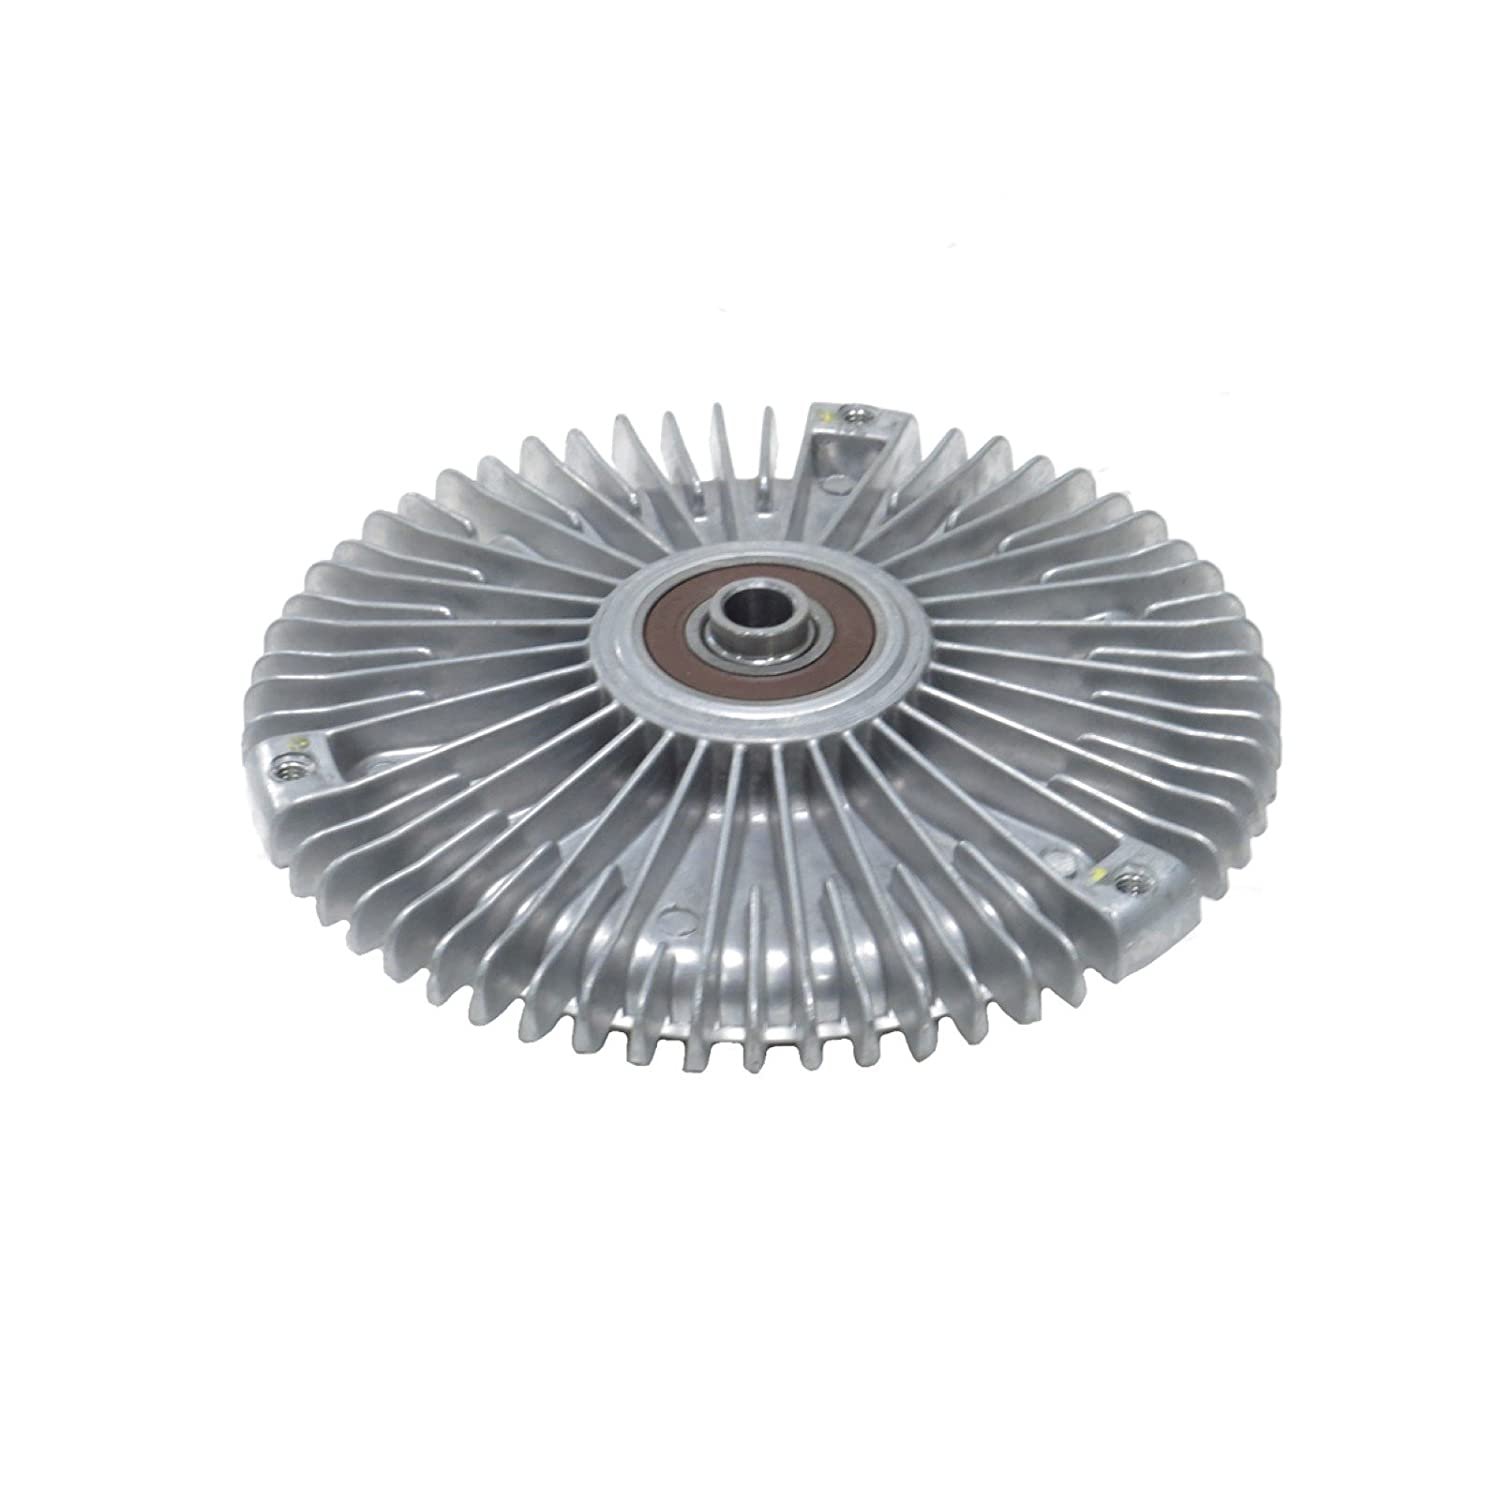 Derale 22306 USMW Professional Series Heavy Duty Fan Clutch US Motor Works